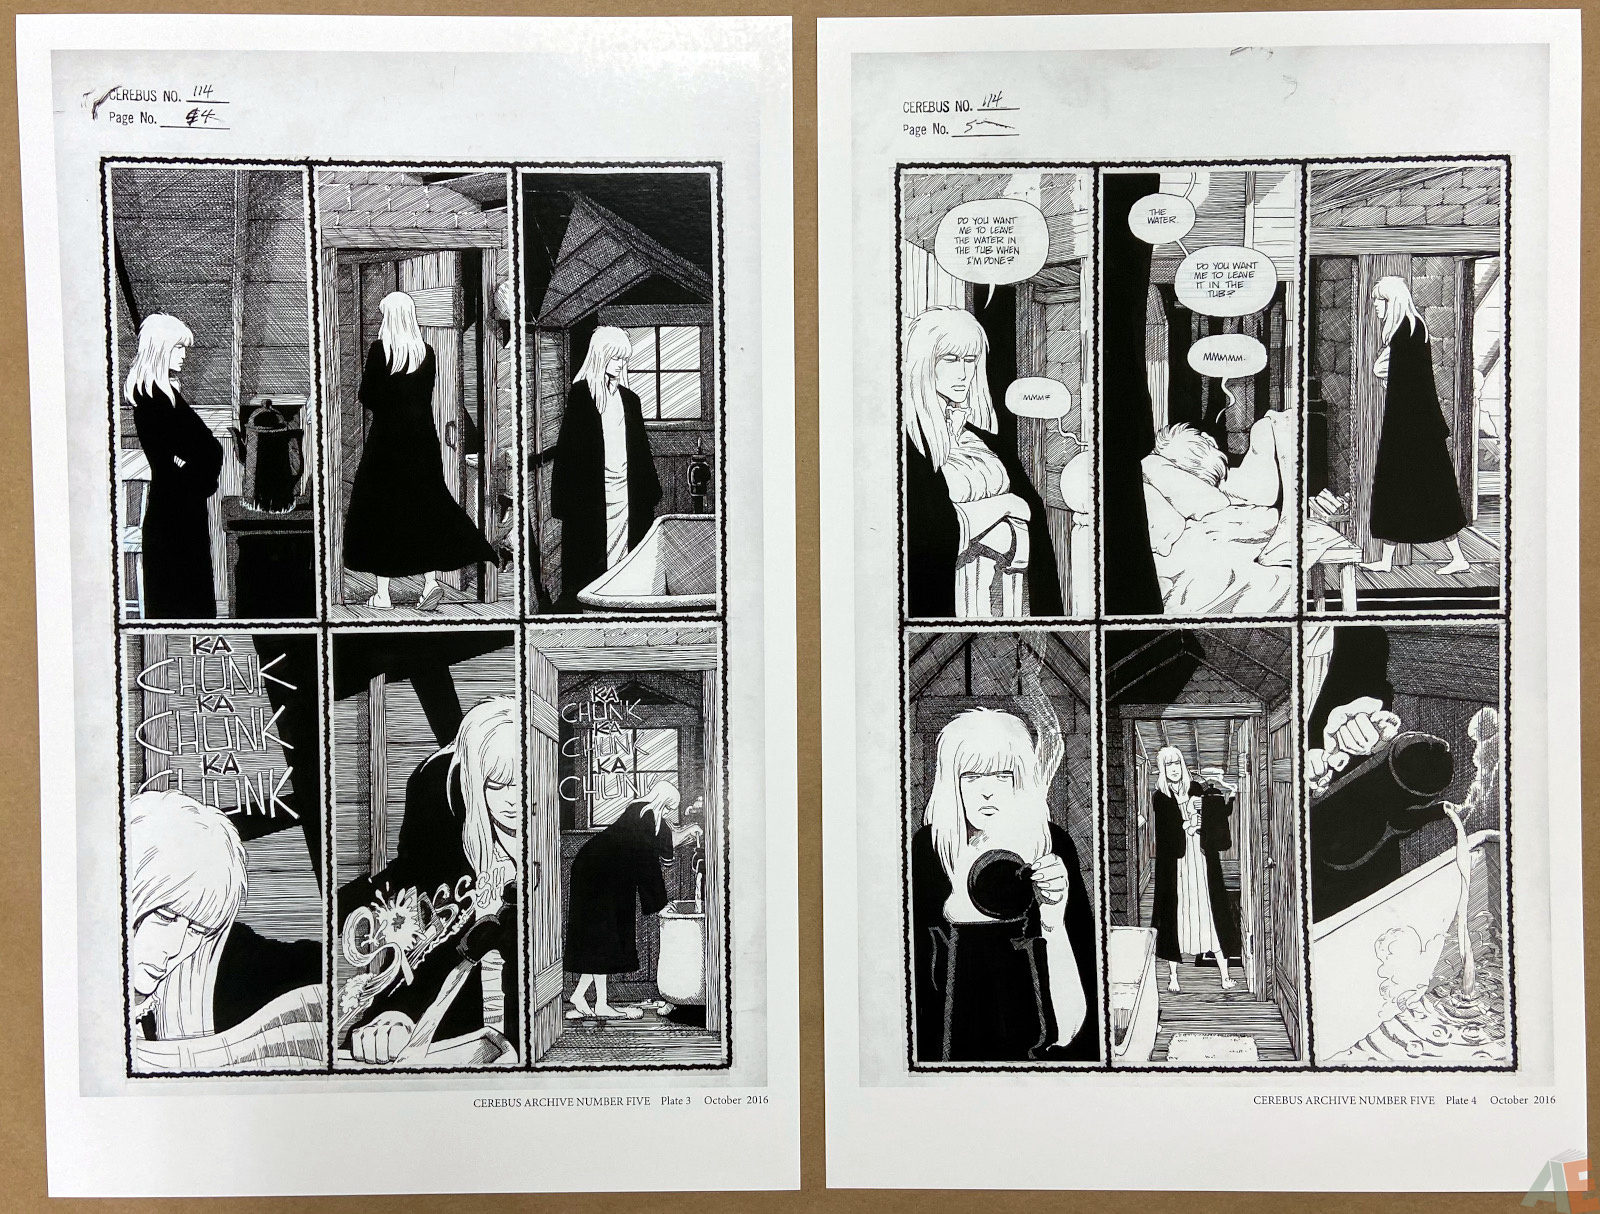 Cerebus Archive Number Five 6